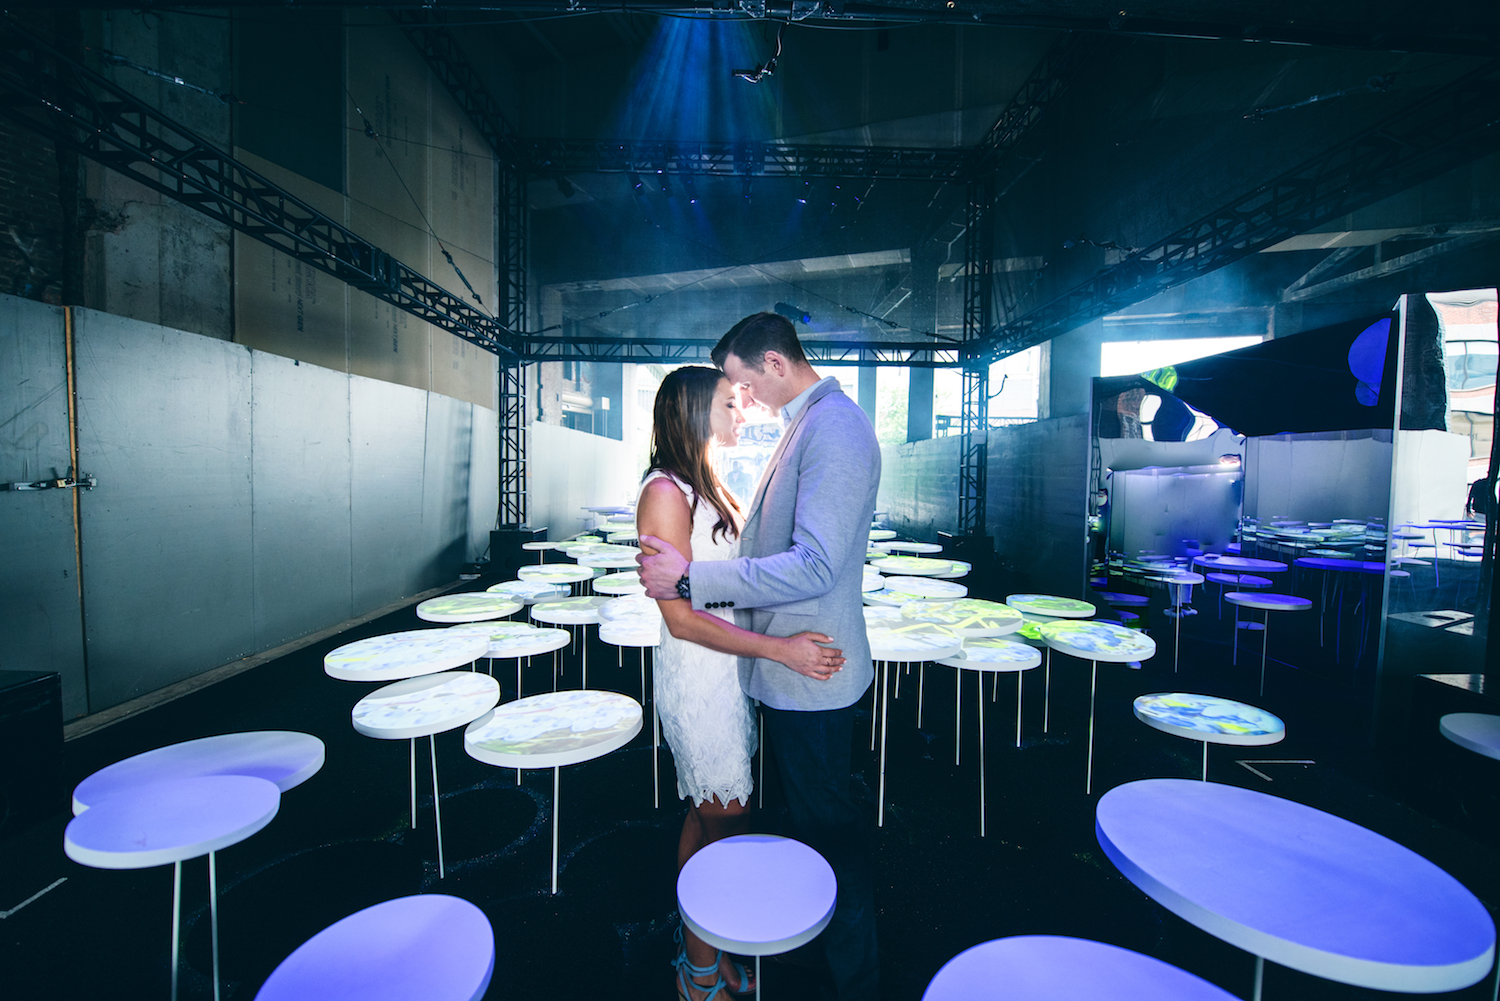 kayla-&-mike-embracing-in-club-restaurant-nyc-engagement-photography-nj